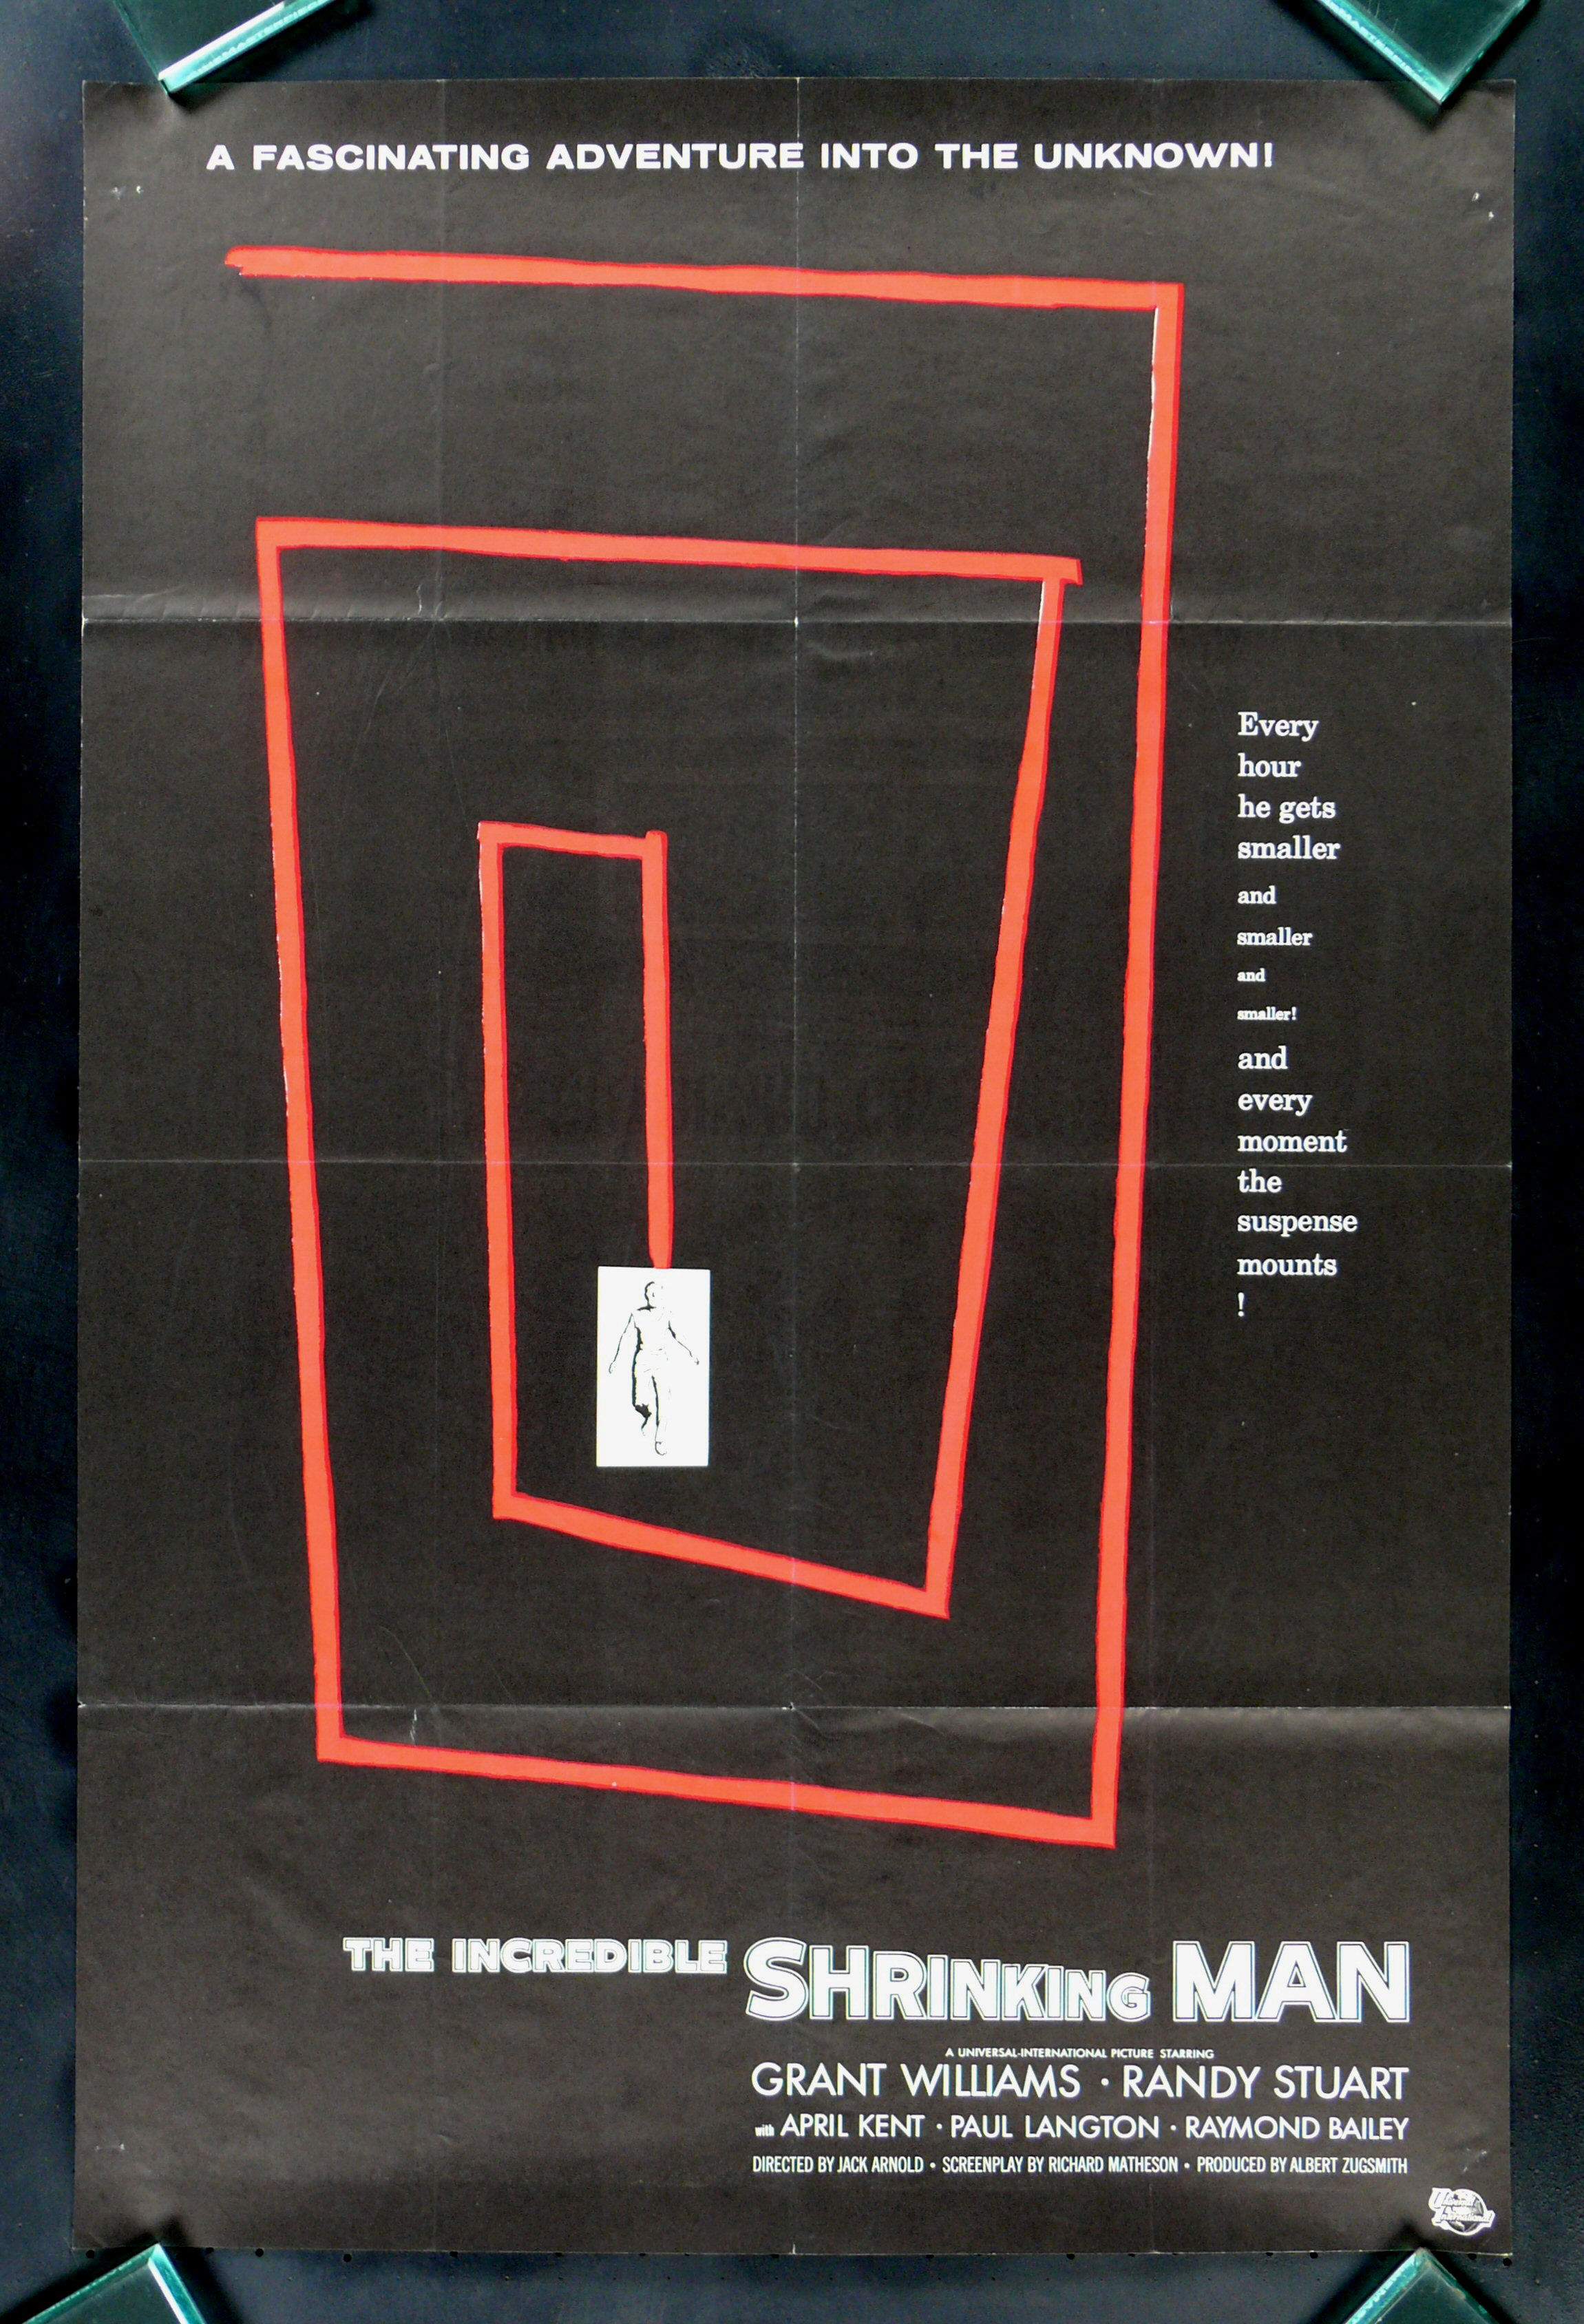 http://www.cinemasterpieces.com/82011/mj5.jpg Incredible Shrinking Man Poster